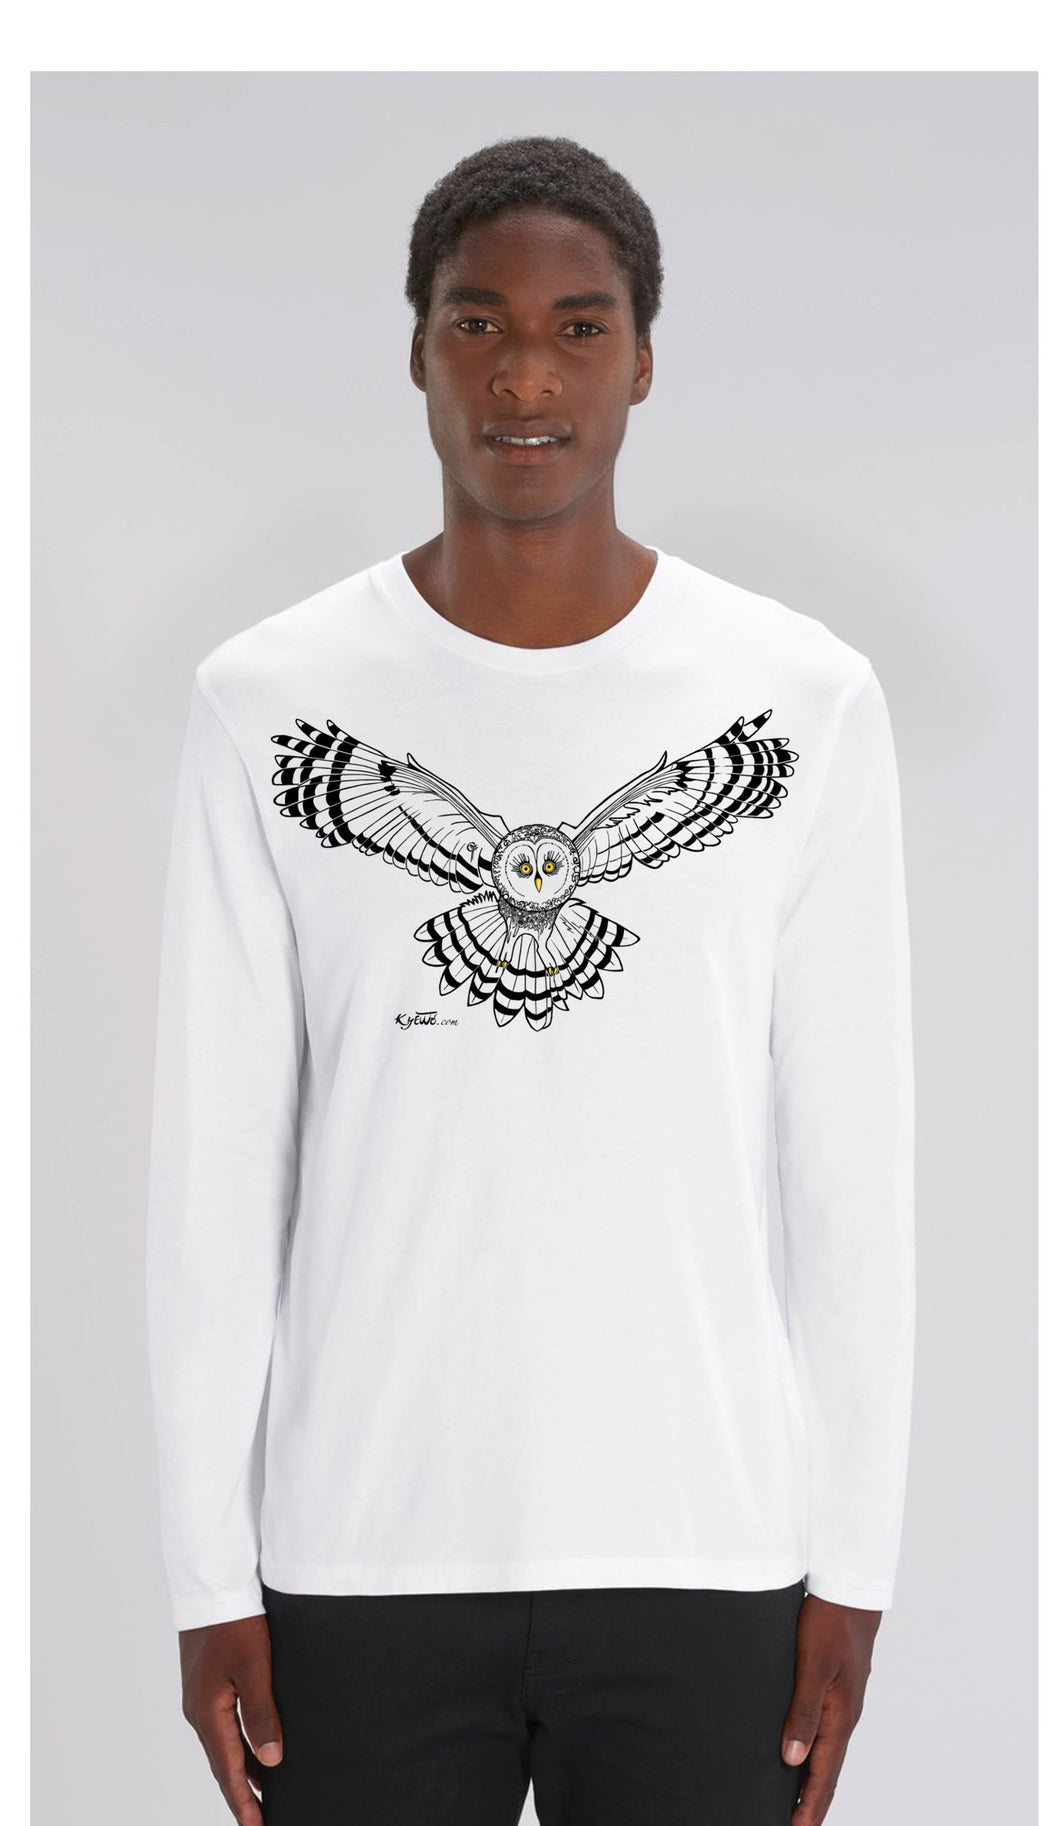 TEE-SHIRT manches longues  unisexe coupe droite- CHOUETTE - Kyewo